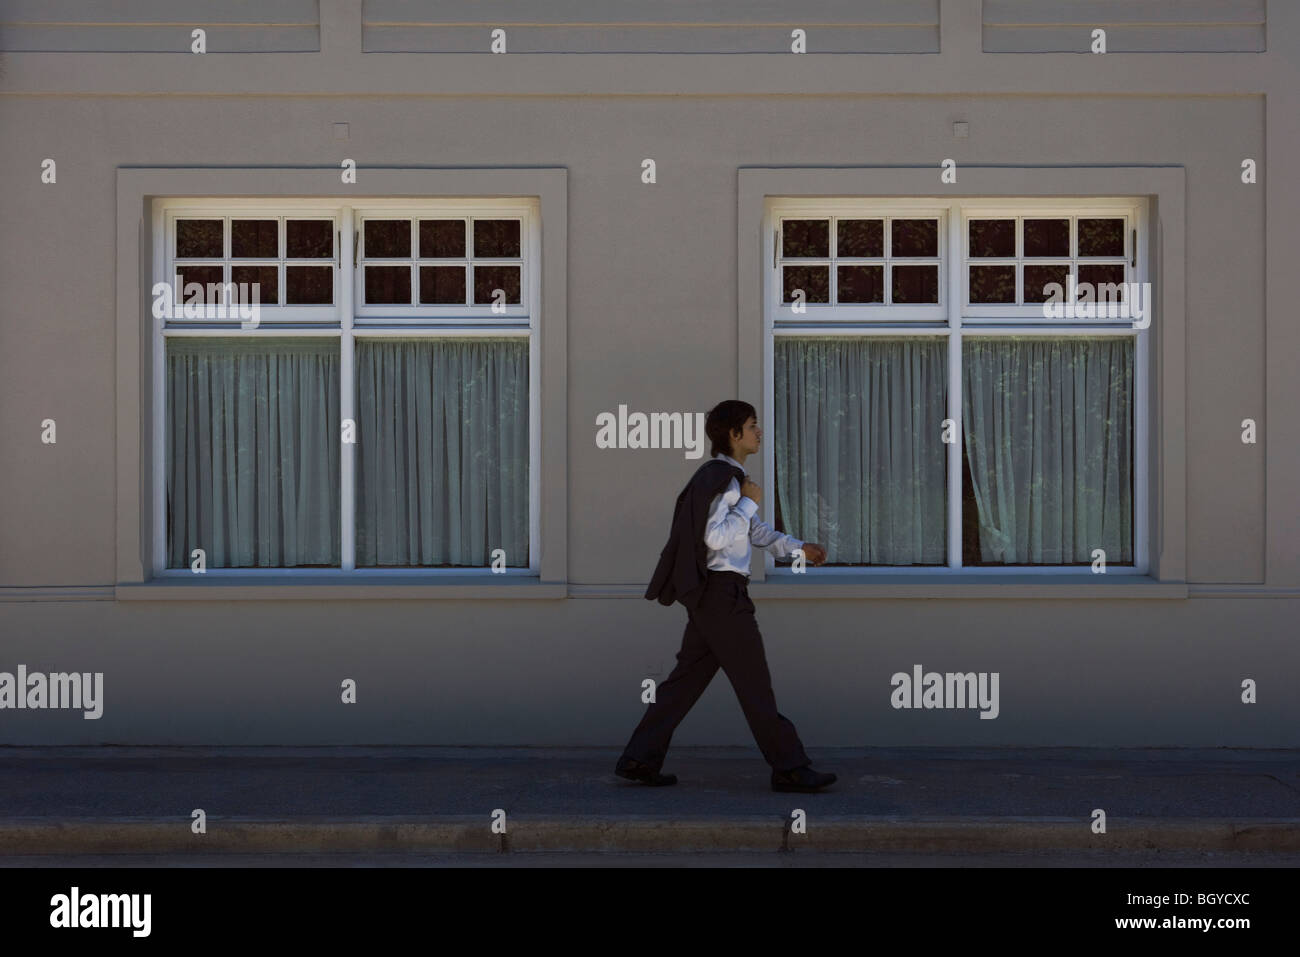 Young man in business attire walking on sidewalk, side view - Stock Image